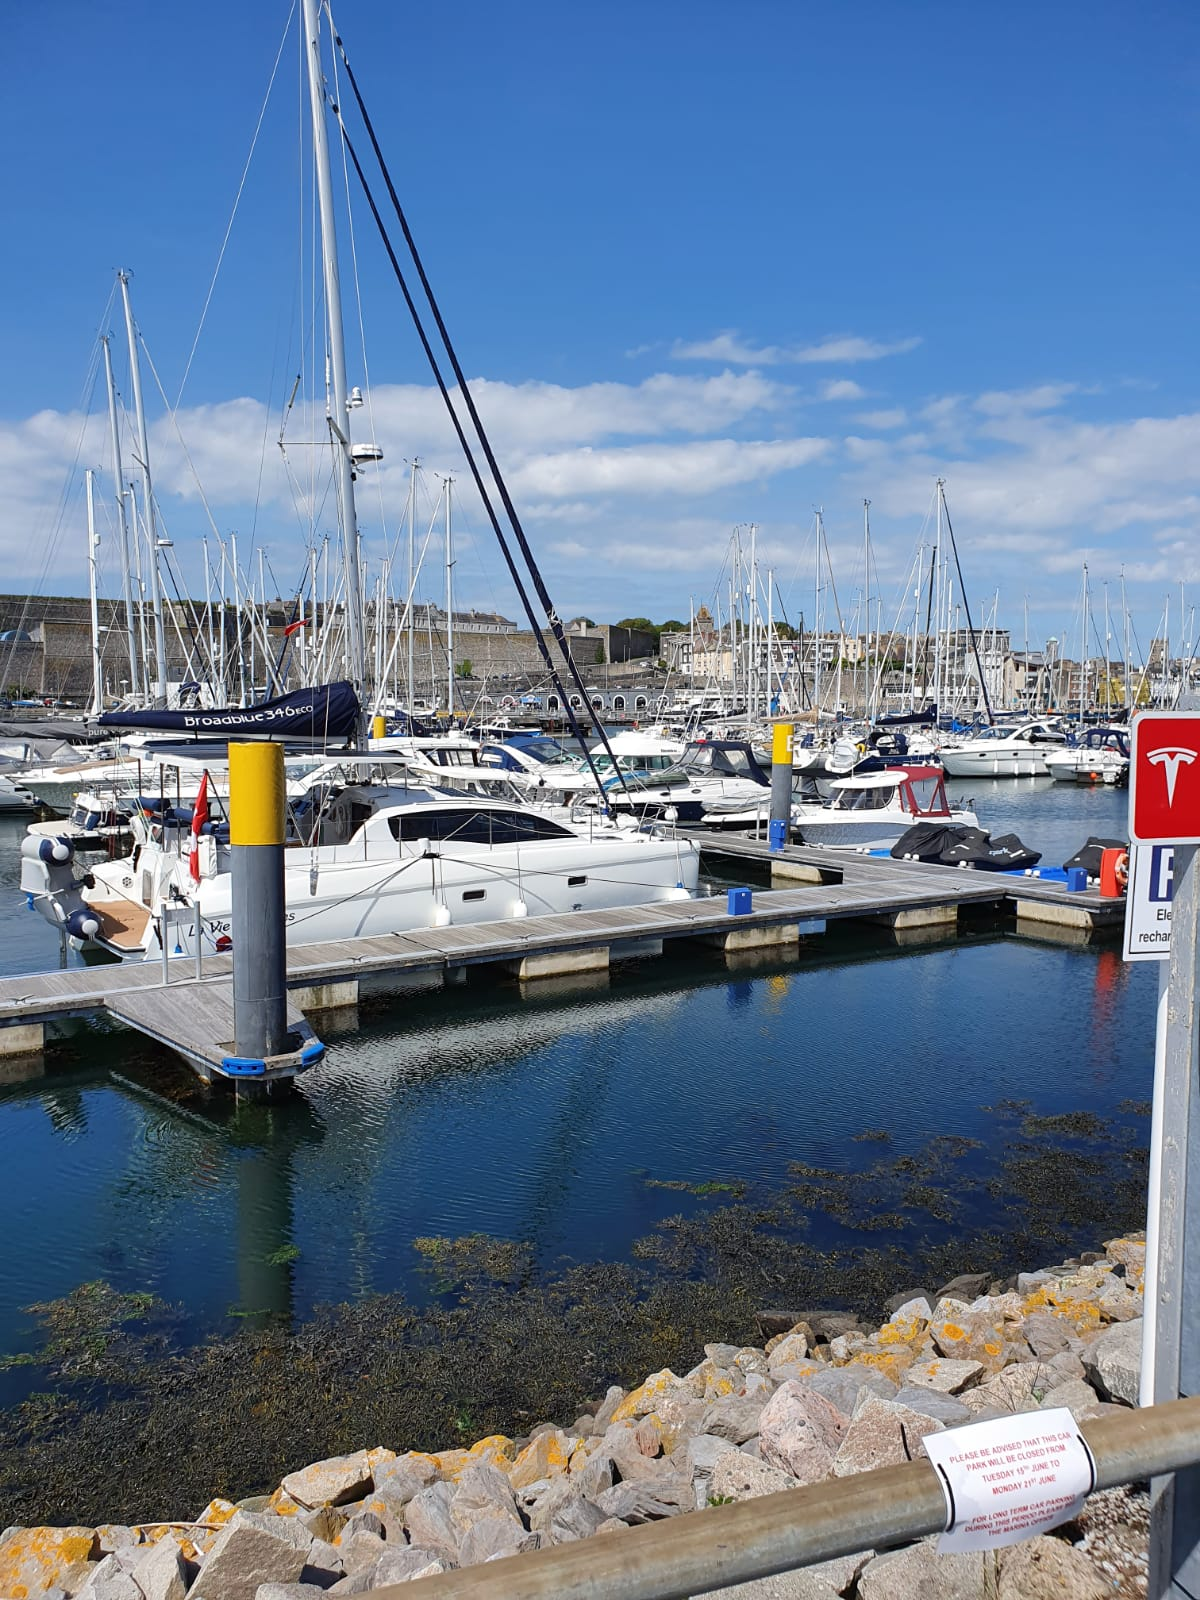 The Green Tech Boat Show